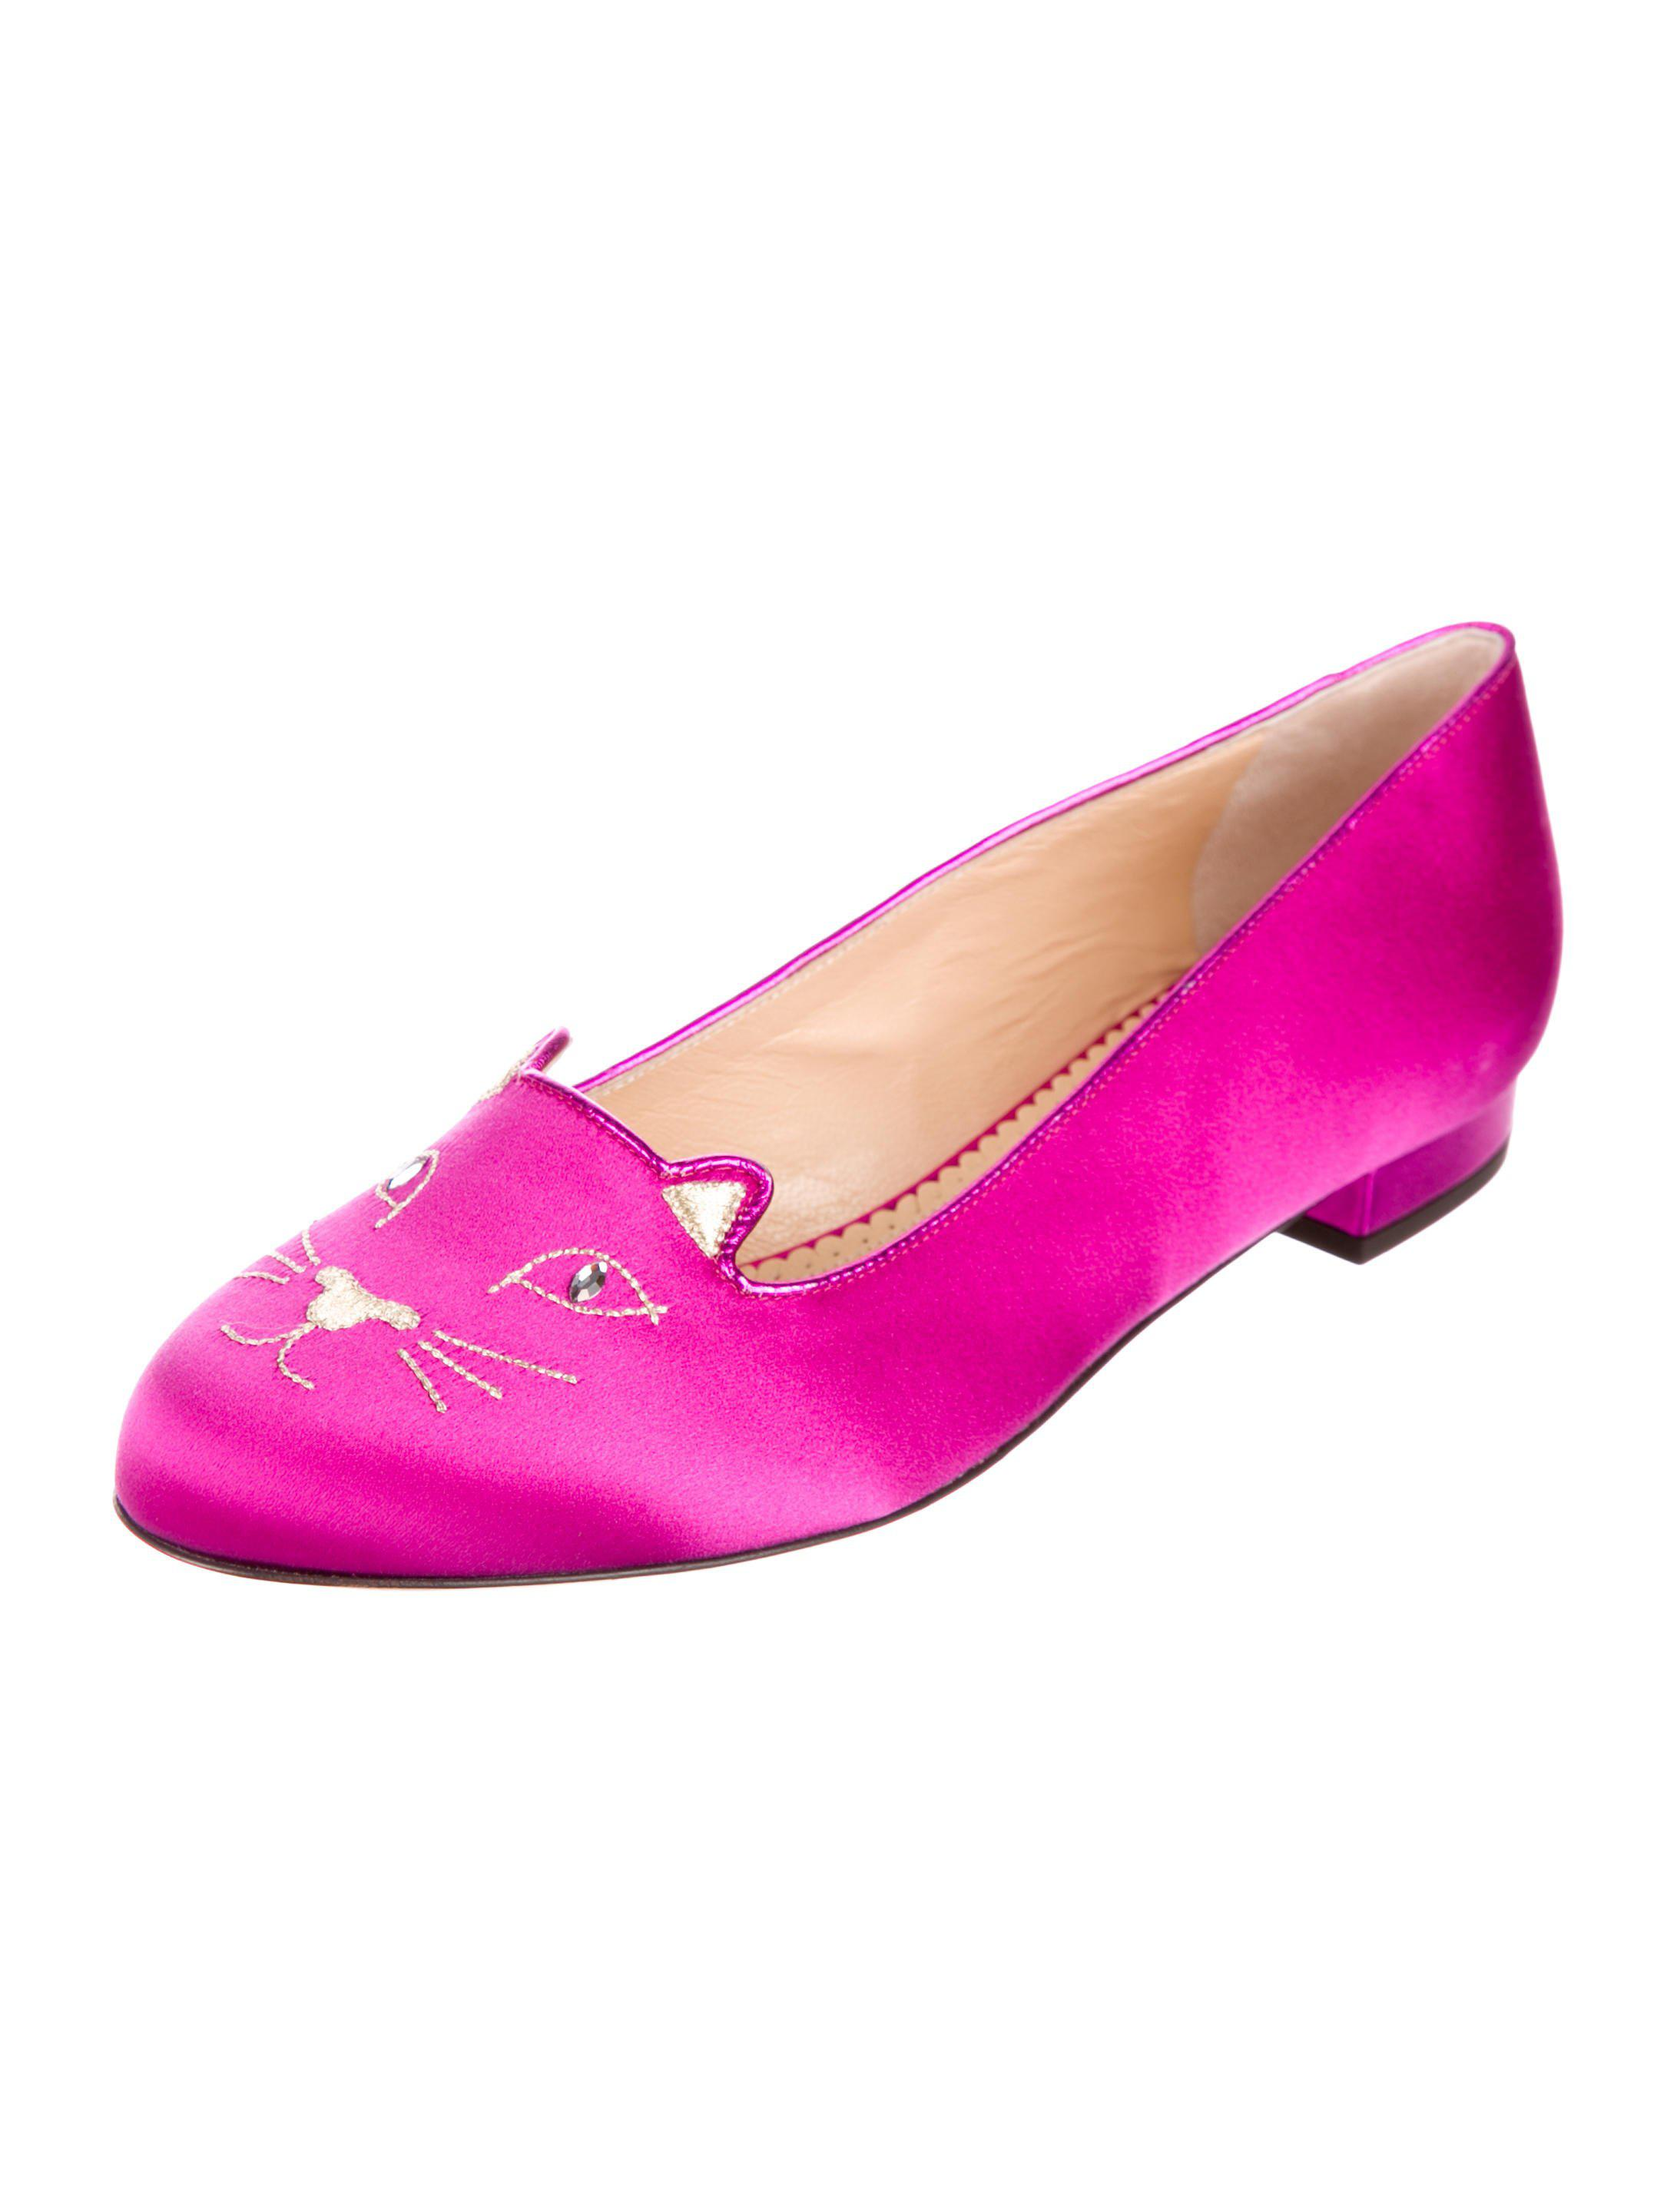 Charlotte Olympia Kitty Satin Flats w/ Tags sale choice buy cheap cheapest price 3yKKB